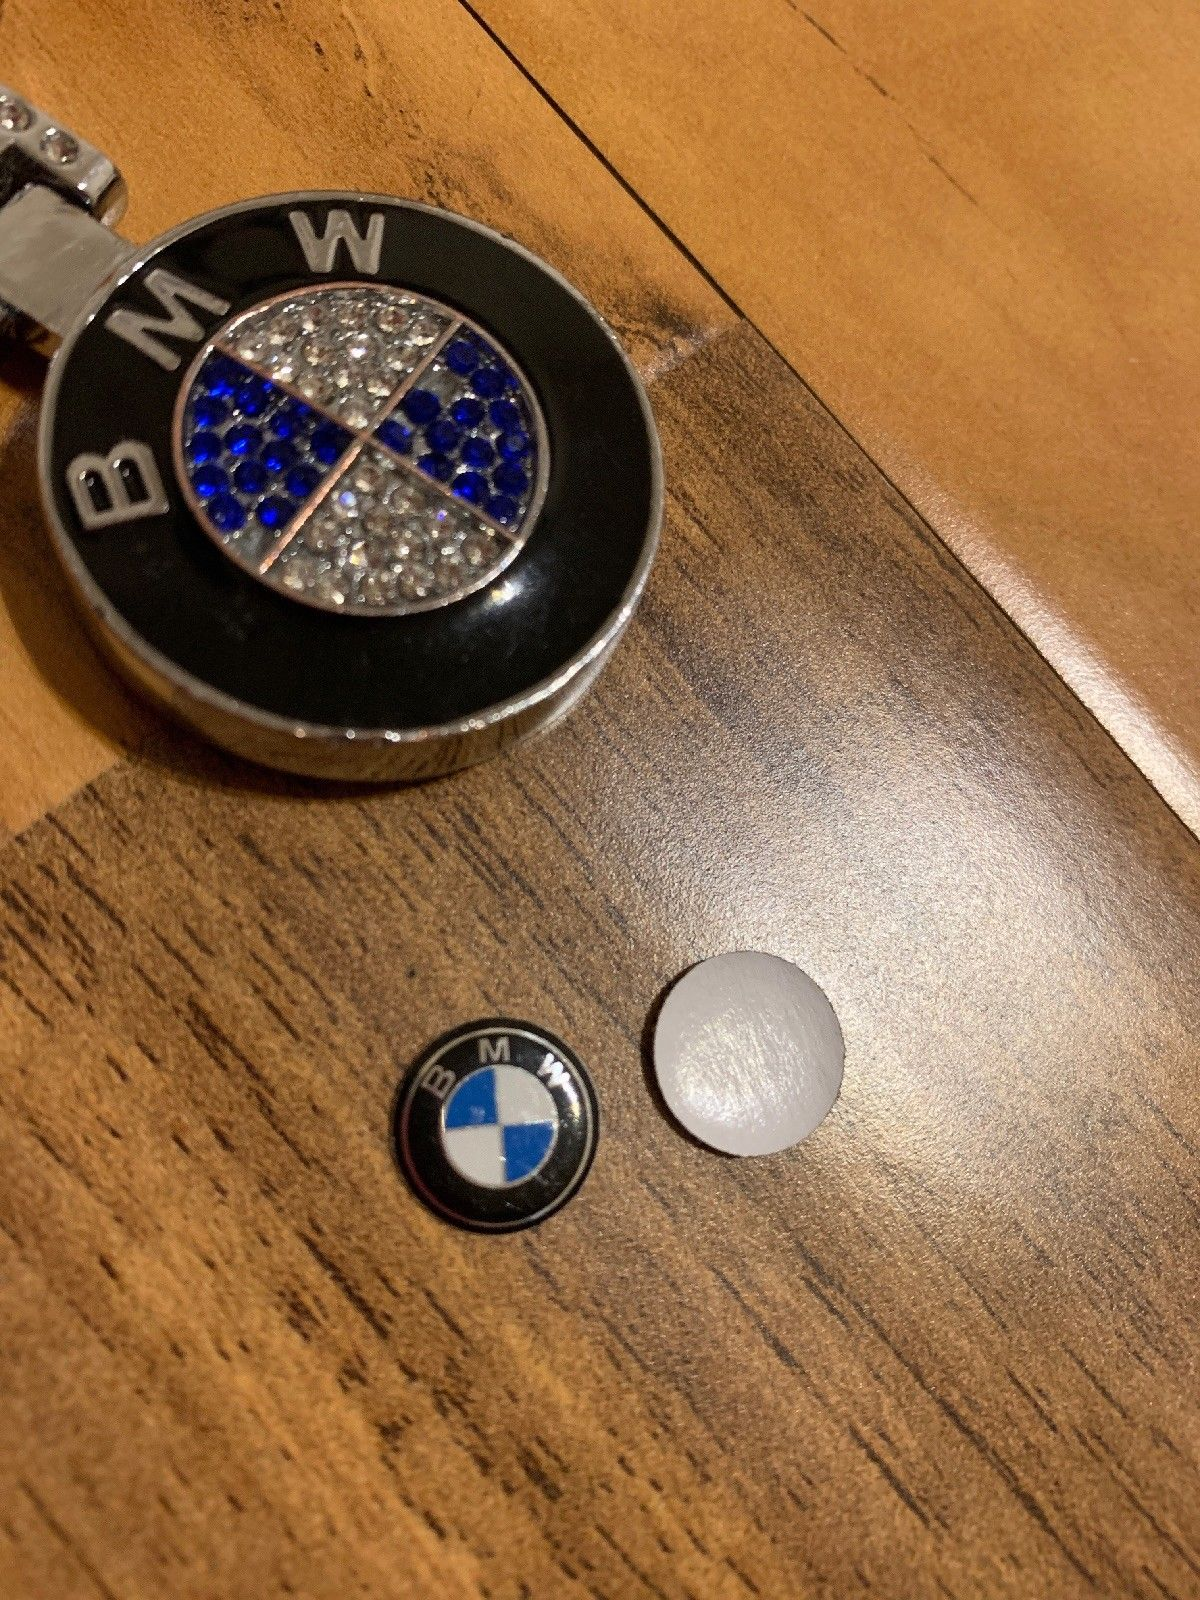 Used 2 Pieces 11mm 1 1cm Bmw Key Fob Logo Badge Sticker Usa Seller Fast Shipping 2018 2019